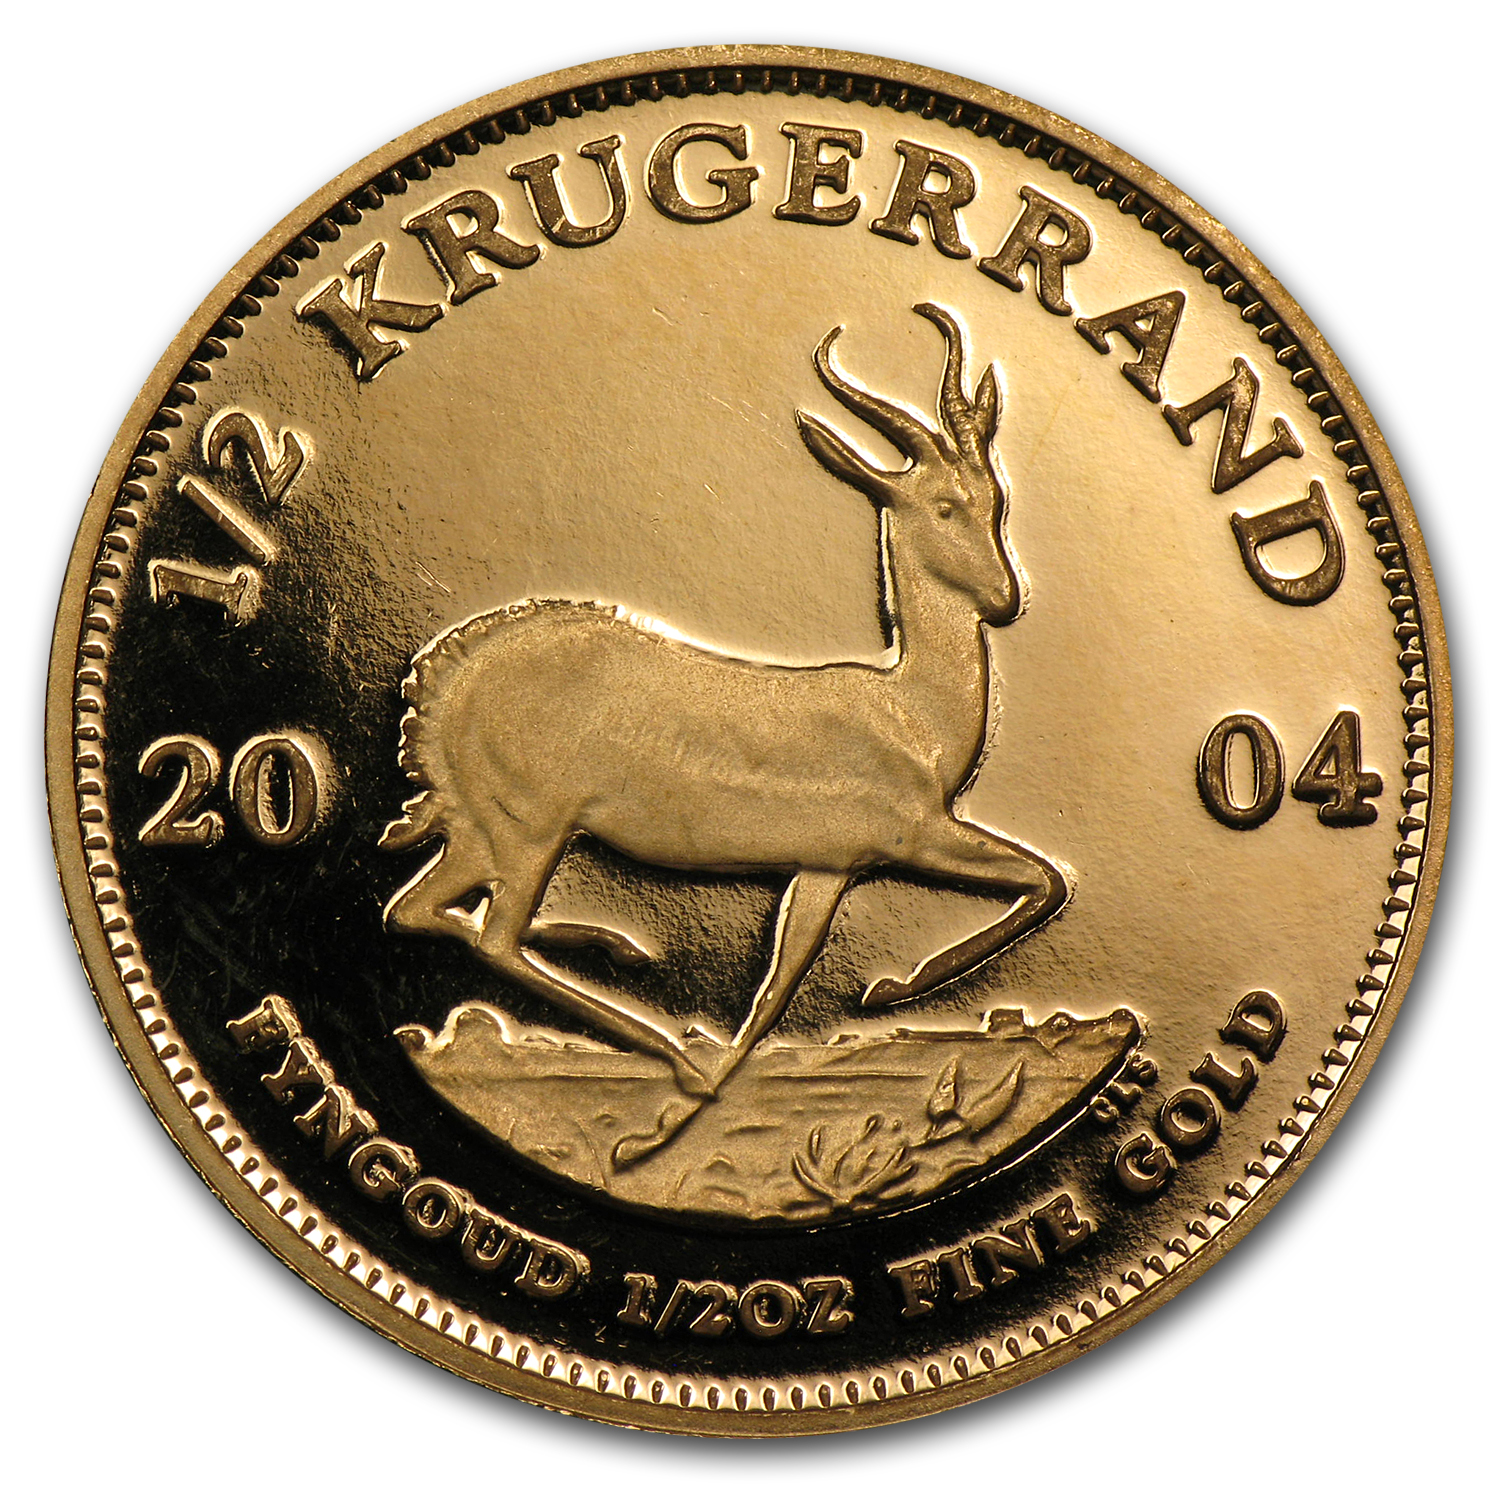 2004 South Africa 1/2 oz Proof Gold Krugerrand